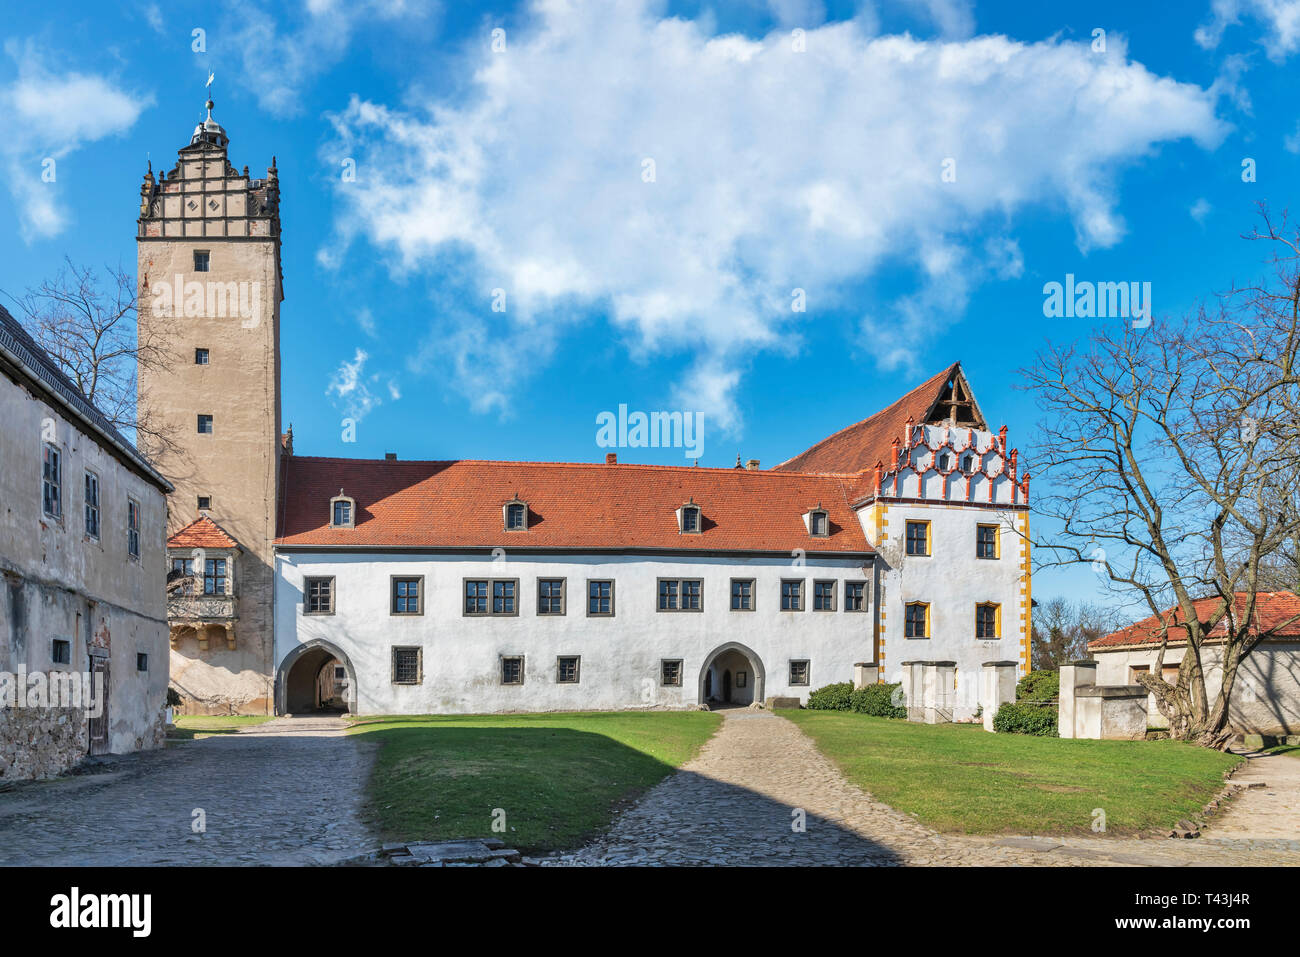 The Castle Strehla is a castle in the town Strehla, administrative district Meissen, Saxony, Germany, Europe - Stock Image